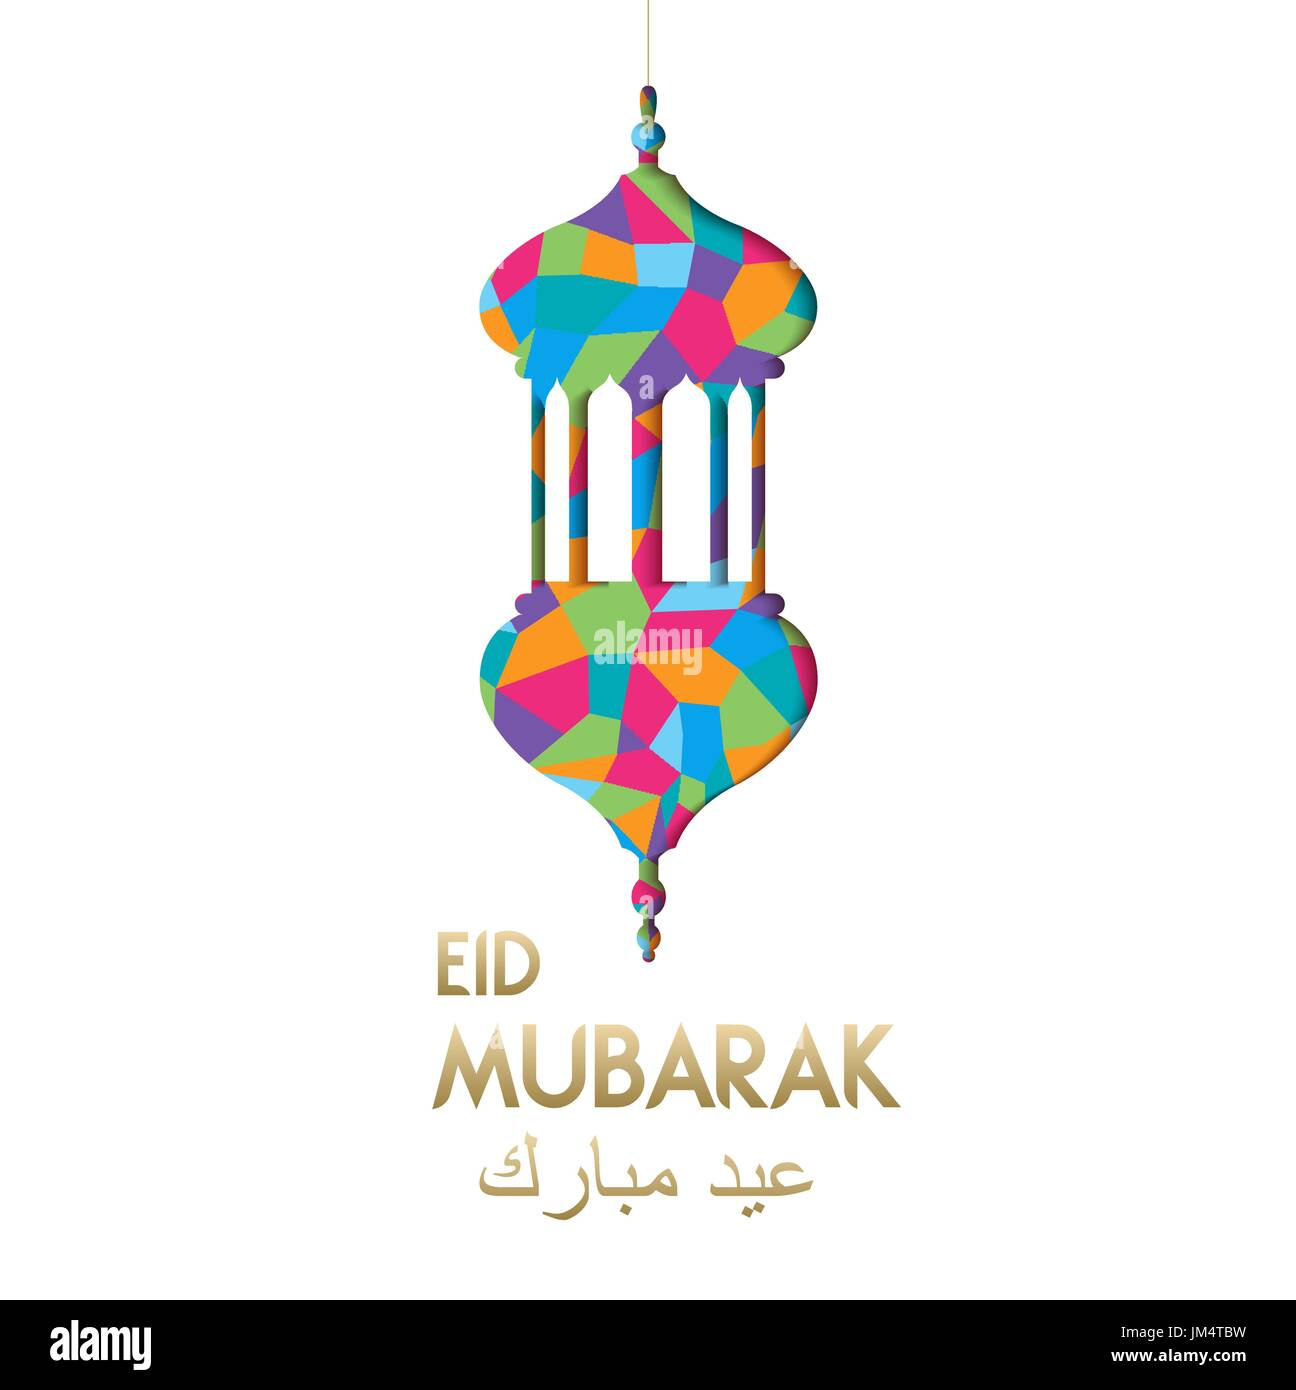 Eid mubarak paper cut art greeting card for muslim holiday season eid mubarak paper cut art greeting card for muslim holiday season traditional lantern in colorful mosaic with arabic typography quote eps10 vector m4hsunfo